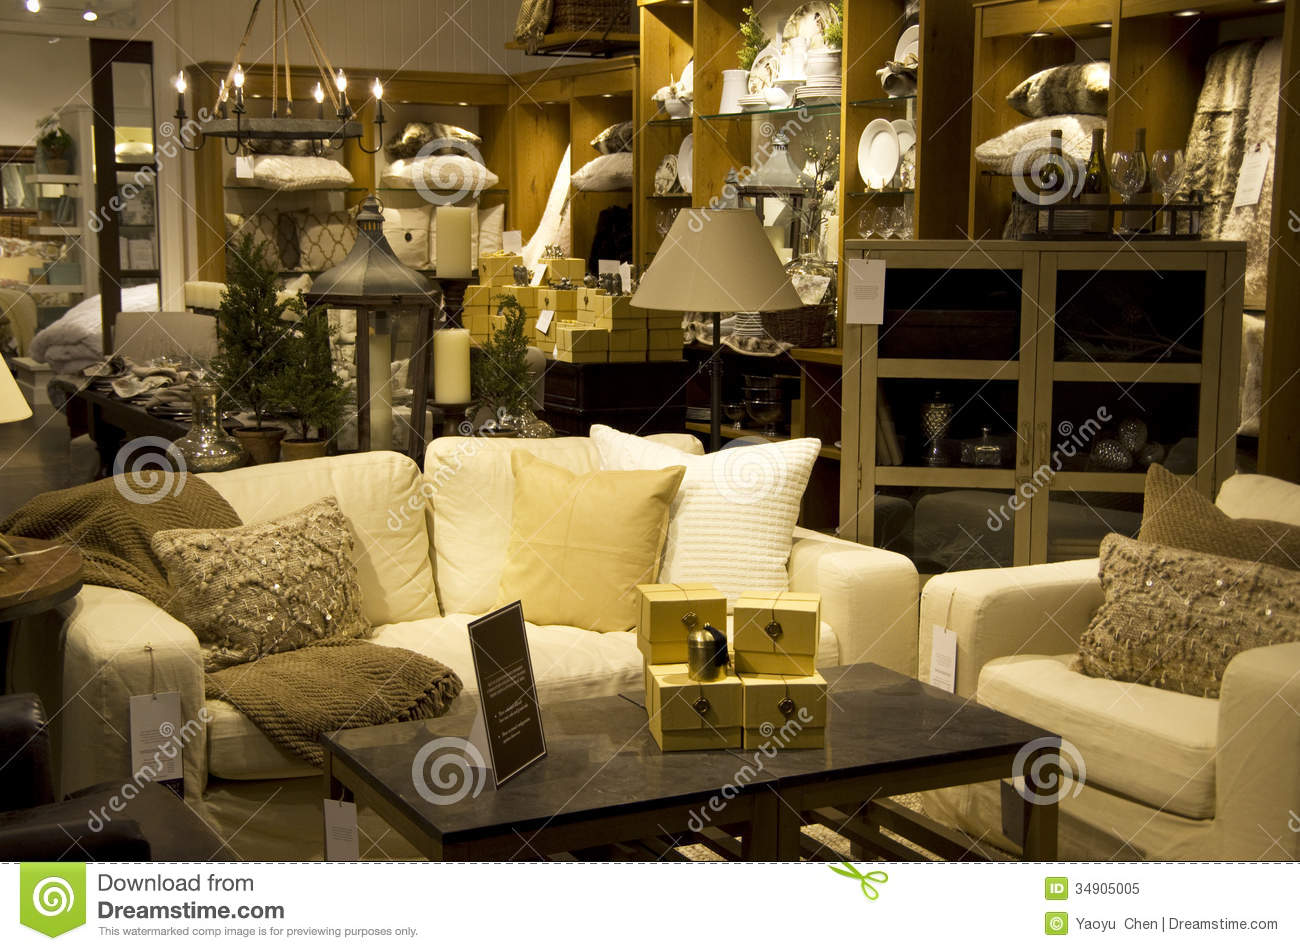 Luxury Furniture Home Decor Store Royalty Free Stock Photo Home Decorators Catalog Best Ideas of Home Decor and Design [homedecoratorscatalog.us]